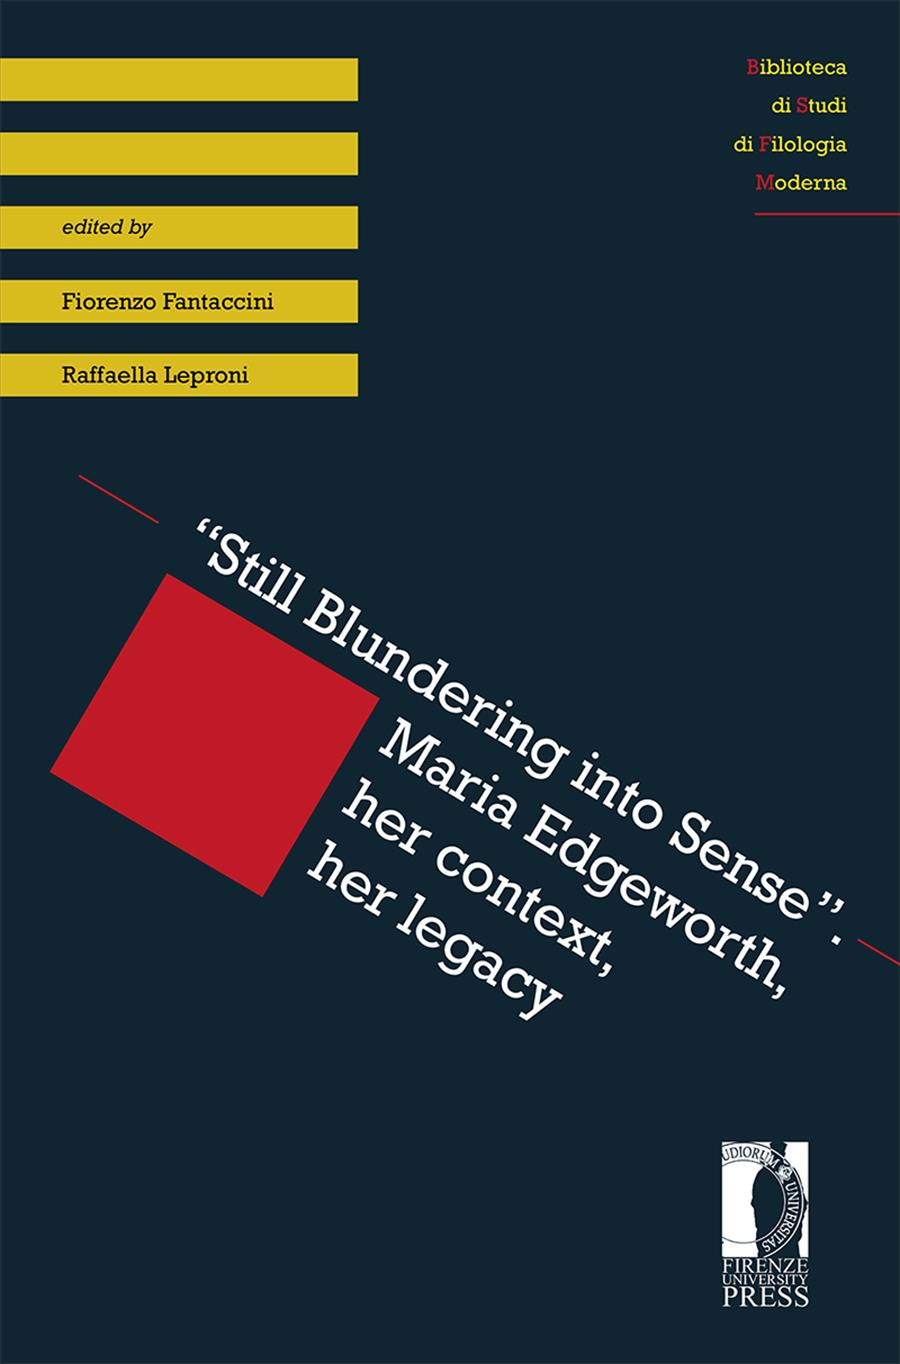 """""""Still Blundering into Sense"""". Maria Edgeworth, her context, her legacy"""